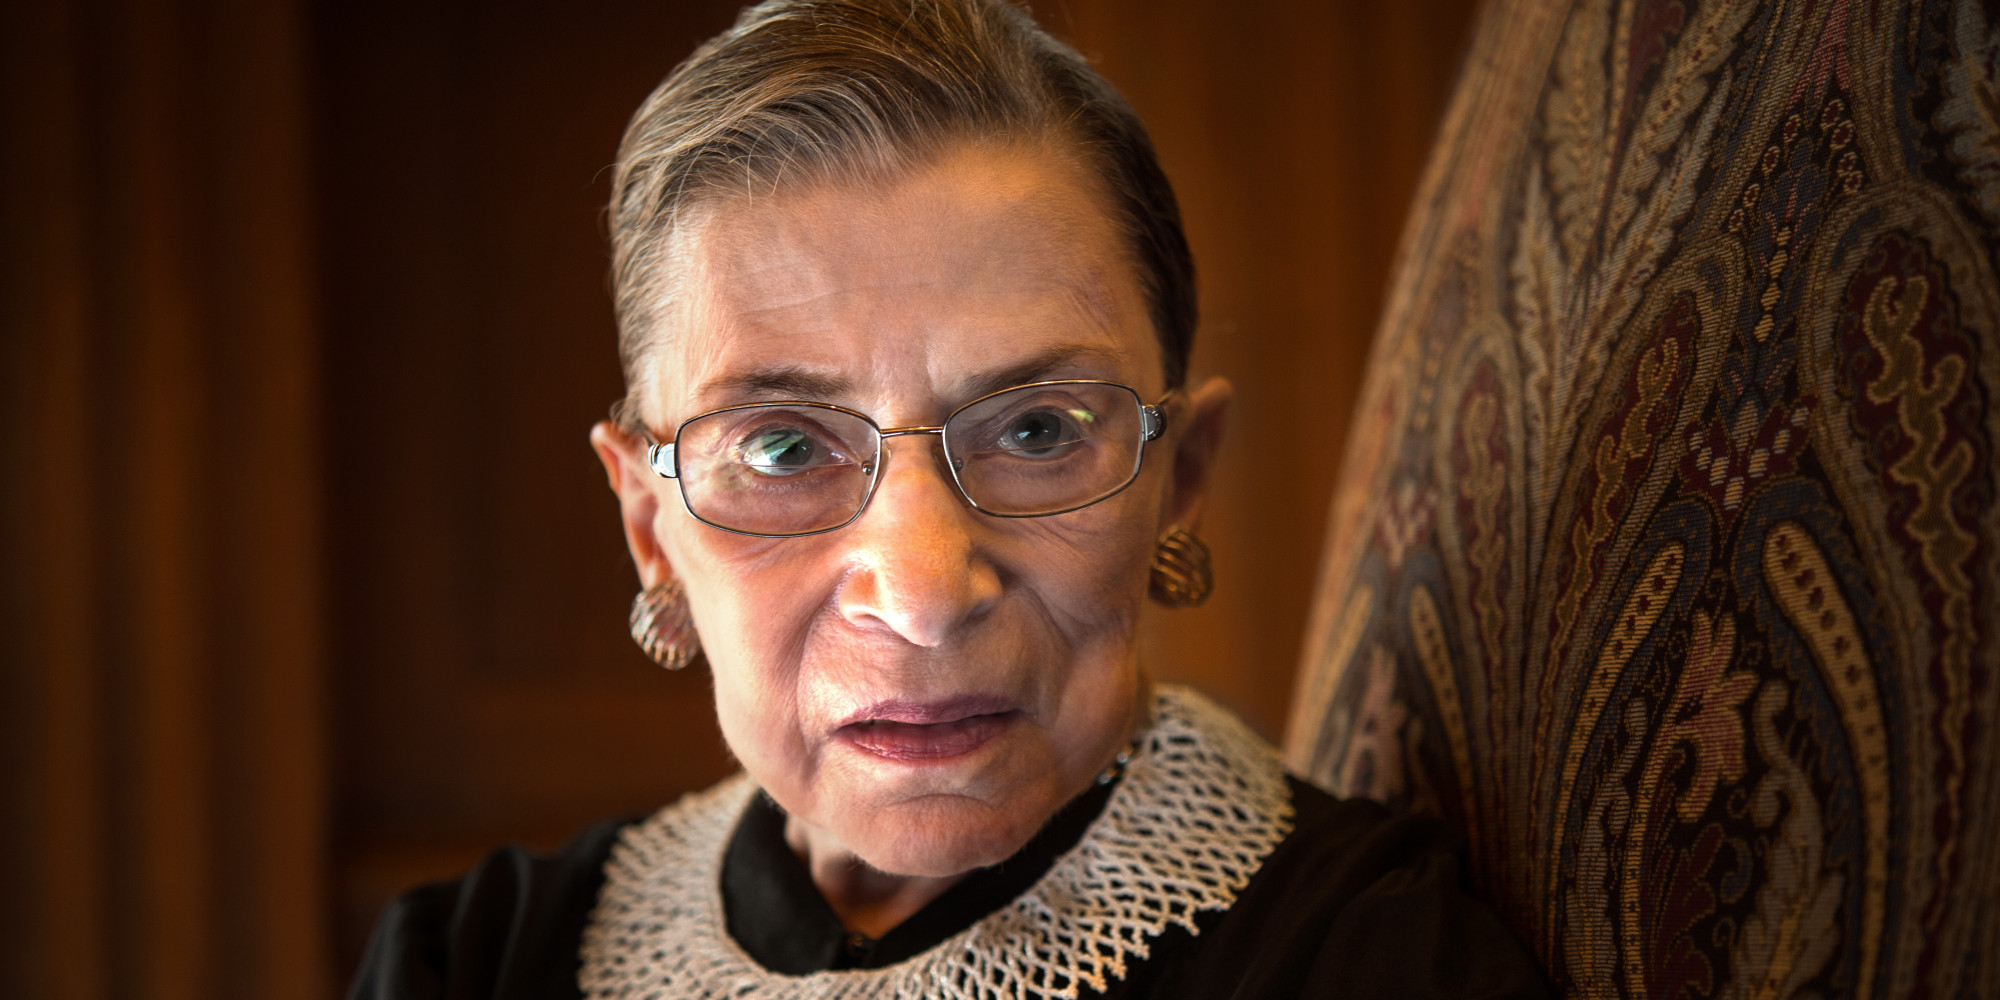 Photo of Shocker — RBG to the Rescue! Ruth Bader Ginsberg Just Blocked Lower Court Ruling on Trump Tax Returns